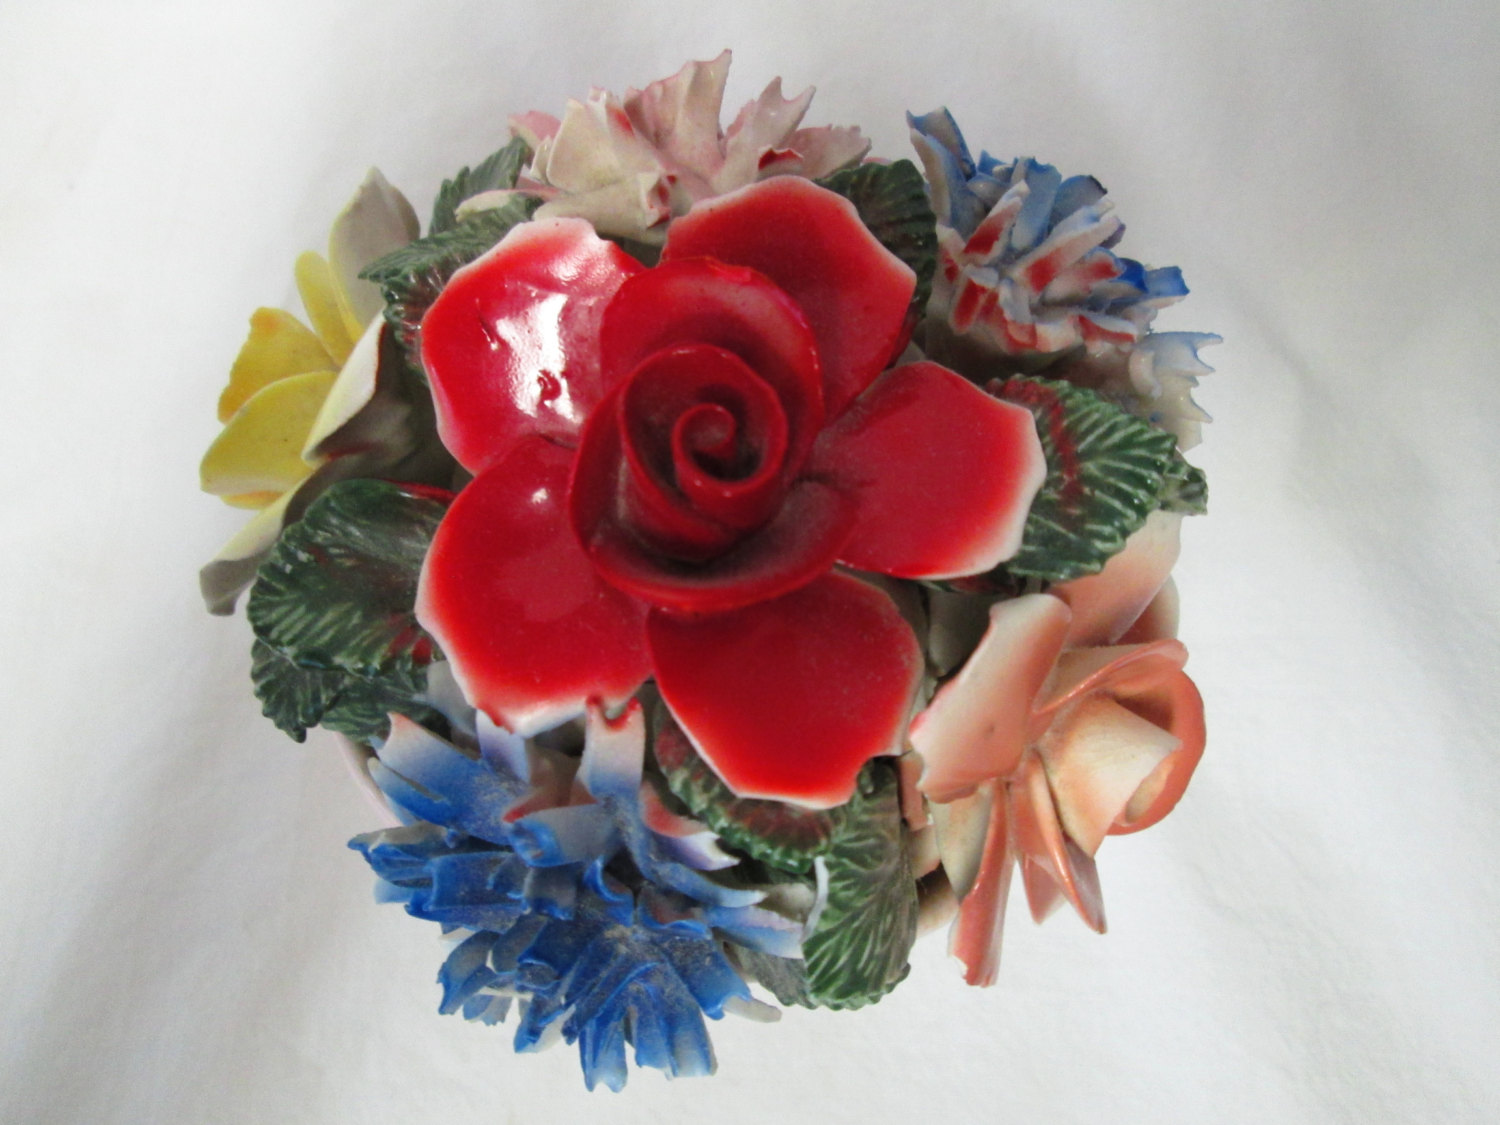 Vintage thorley fine bone china flowers in vase multi colored large vintage thorley fine bone china flowers in vase multi colored large piece roses and carnations pink mightylinksfo